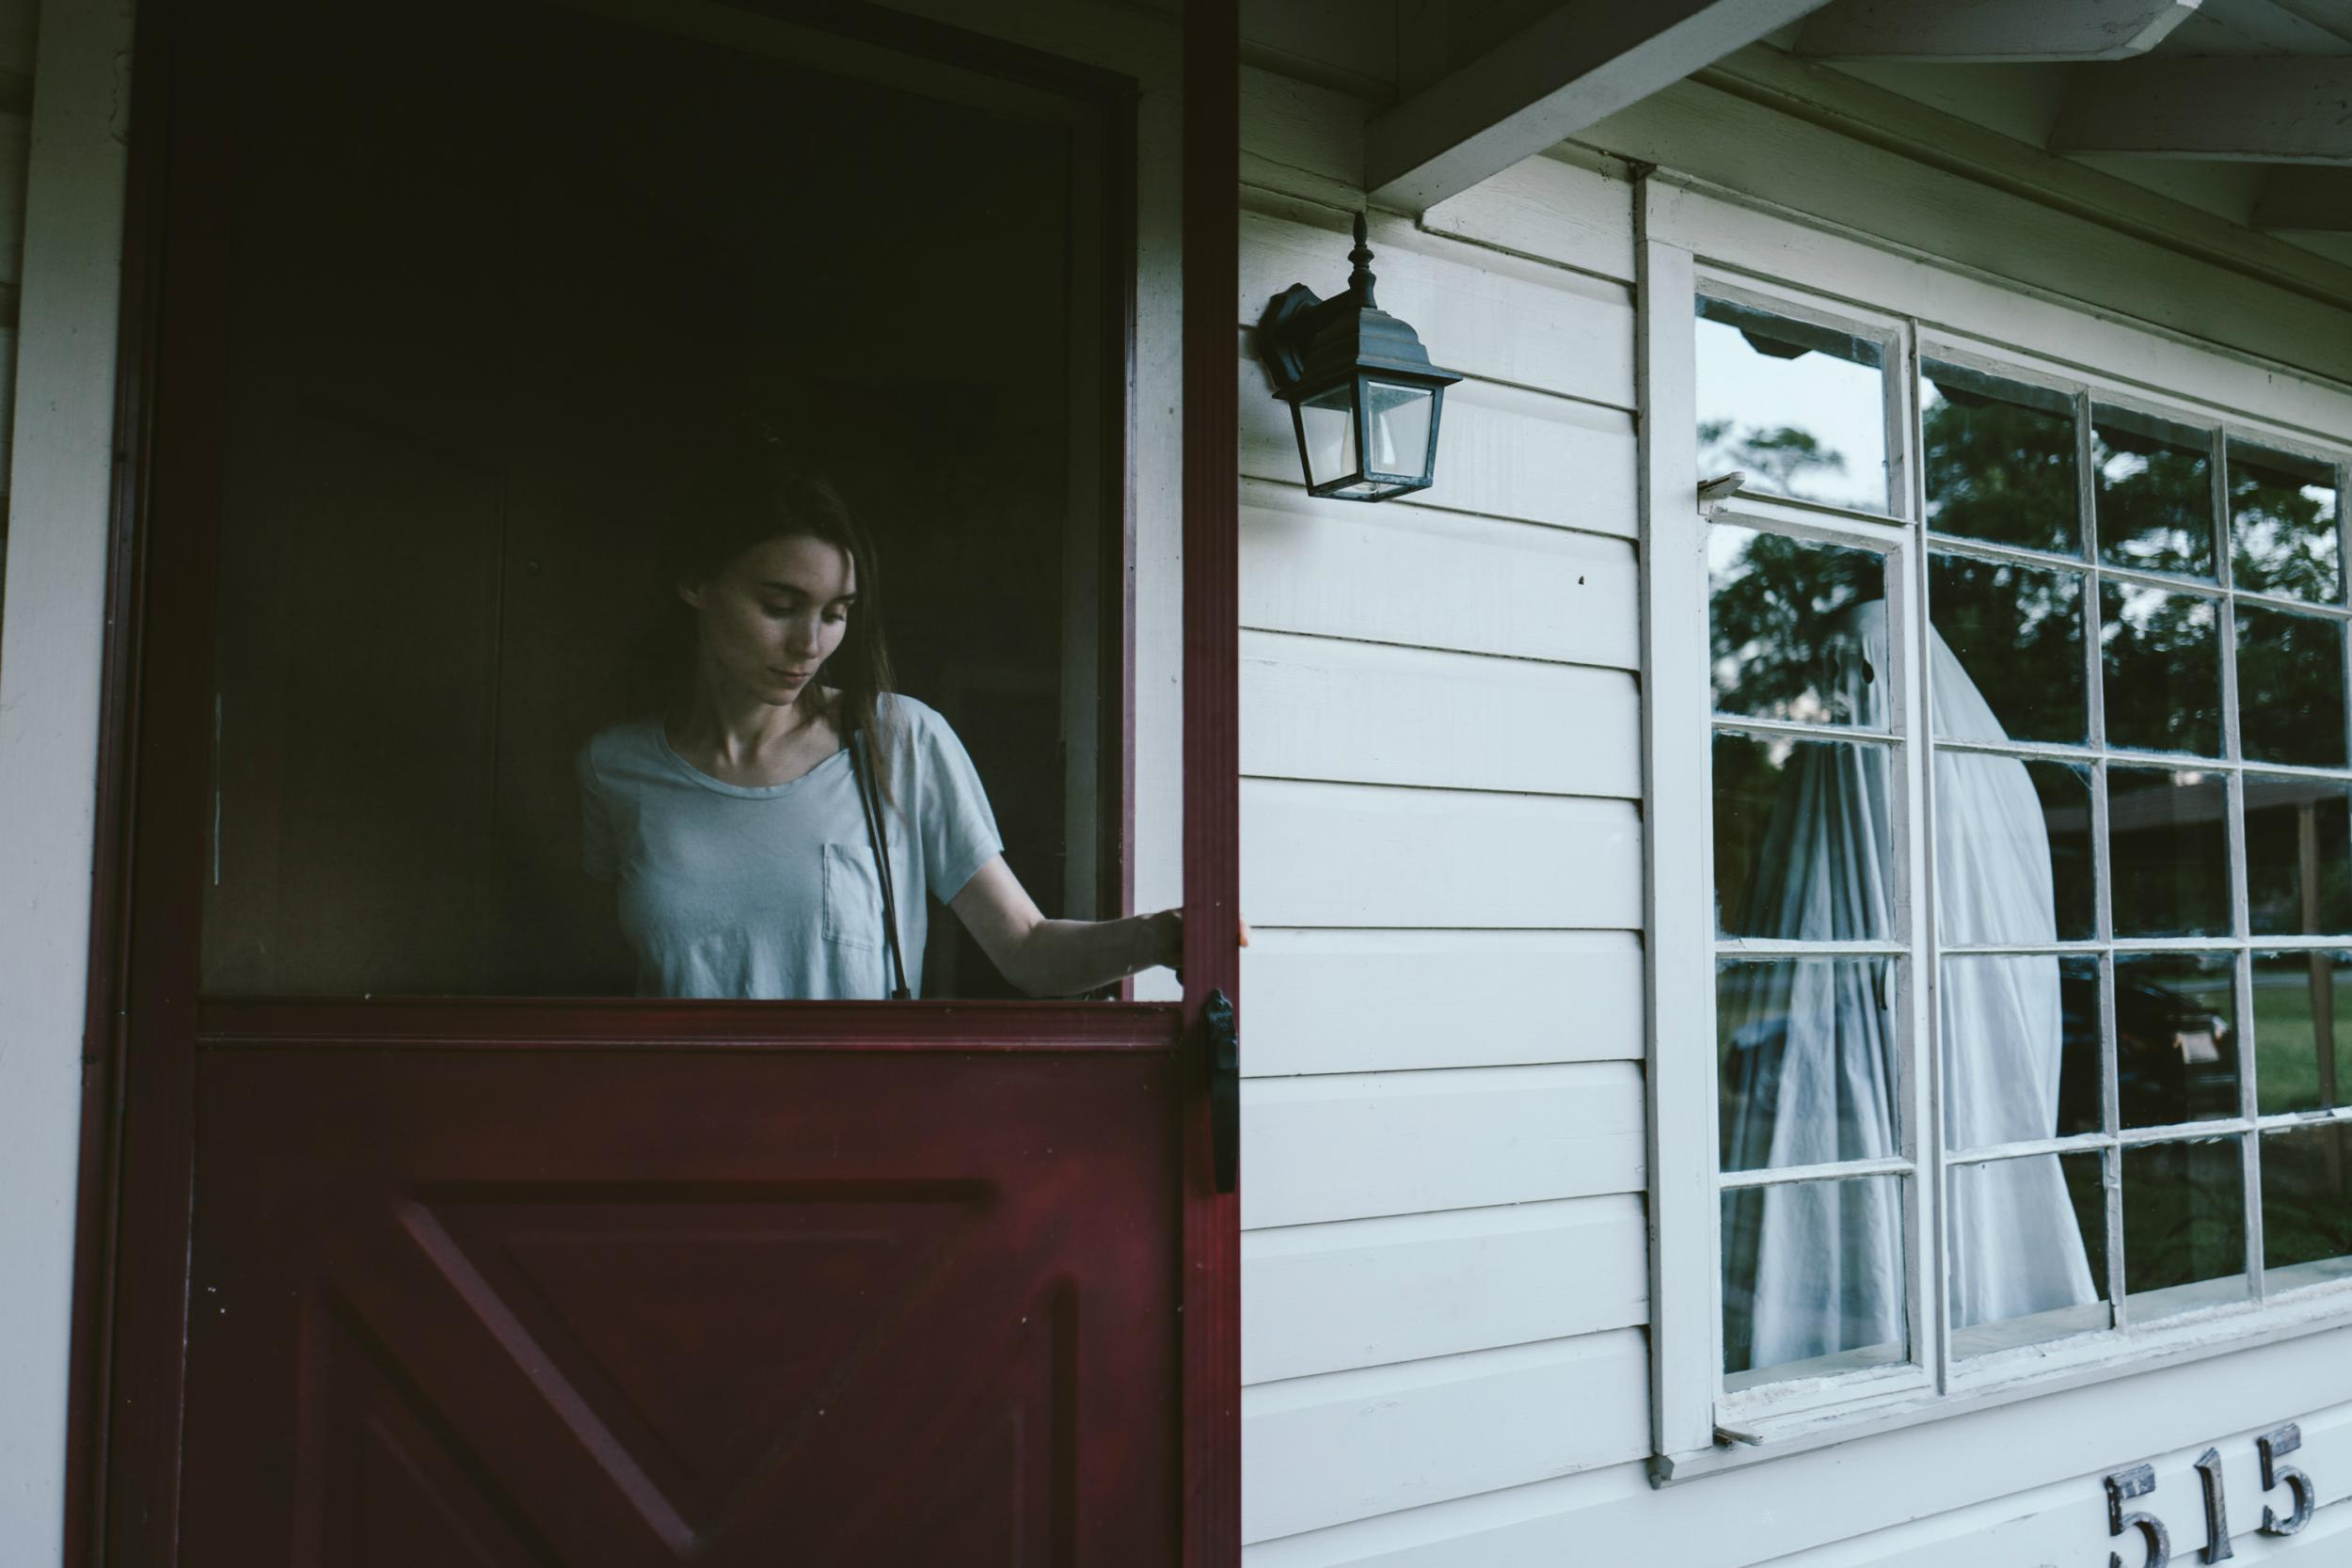 Film reviews round-up: A Ghost Story, Annabelle: Creation, Atomic Blonde,  Step, The Nut Job 2 | The Independent